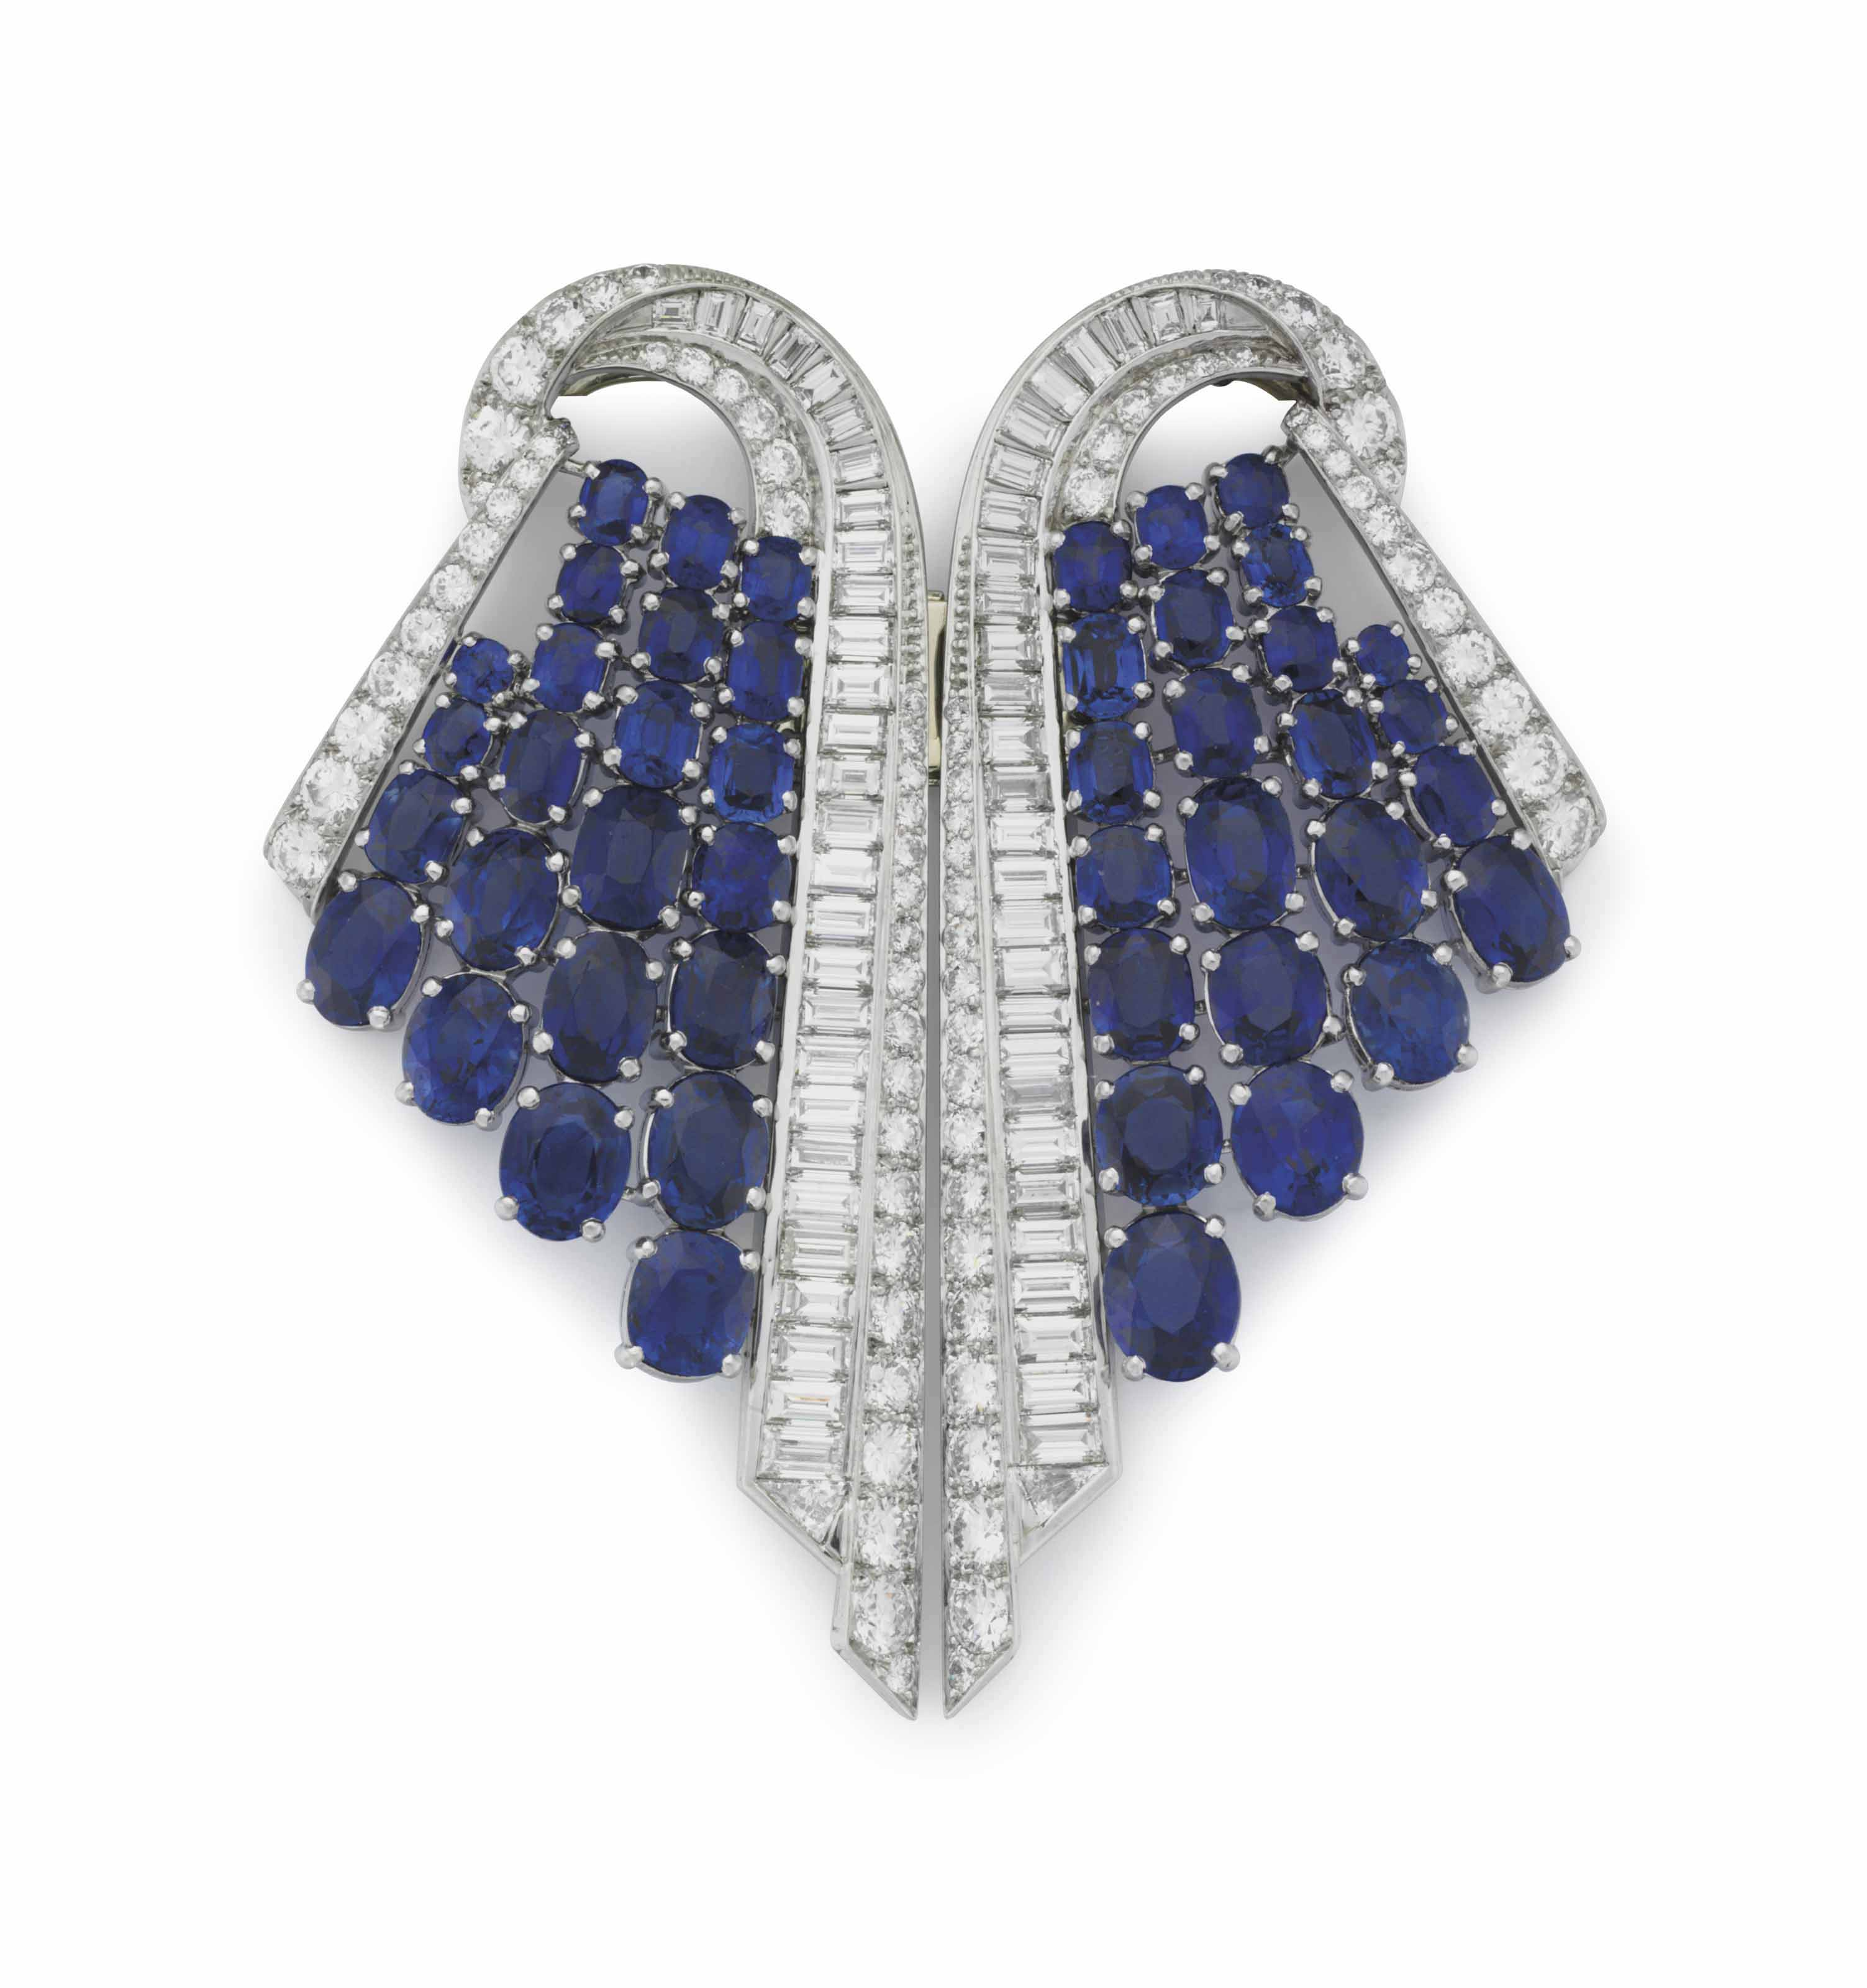 AN ART DECO SAPPHIRE AND DIAMOND DOUBLE-CLIP BROOCH, BY MARCUS & CO.